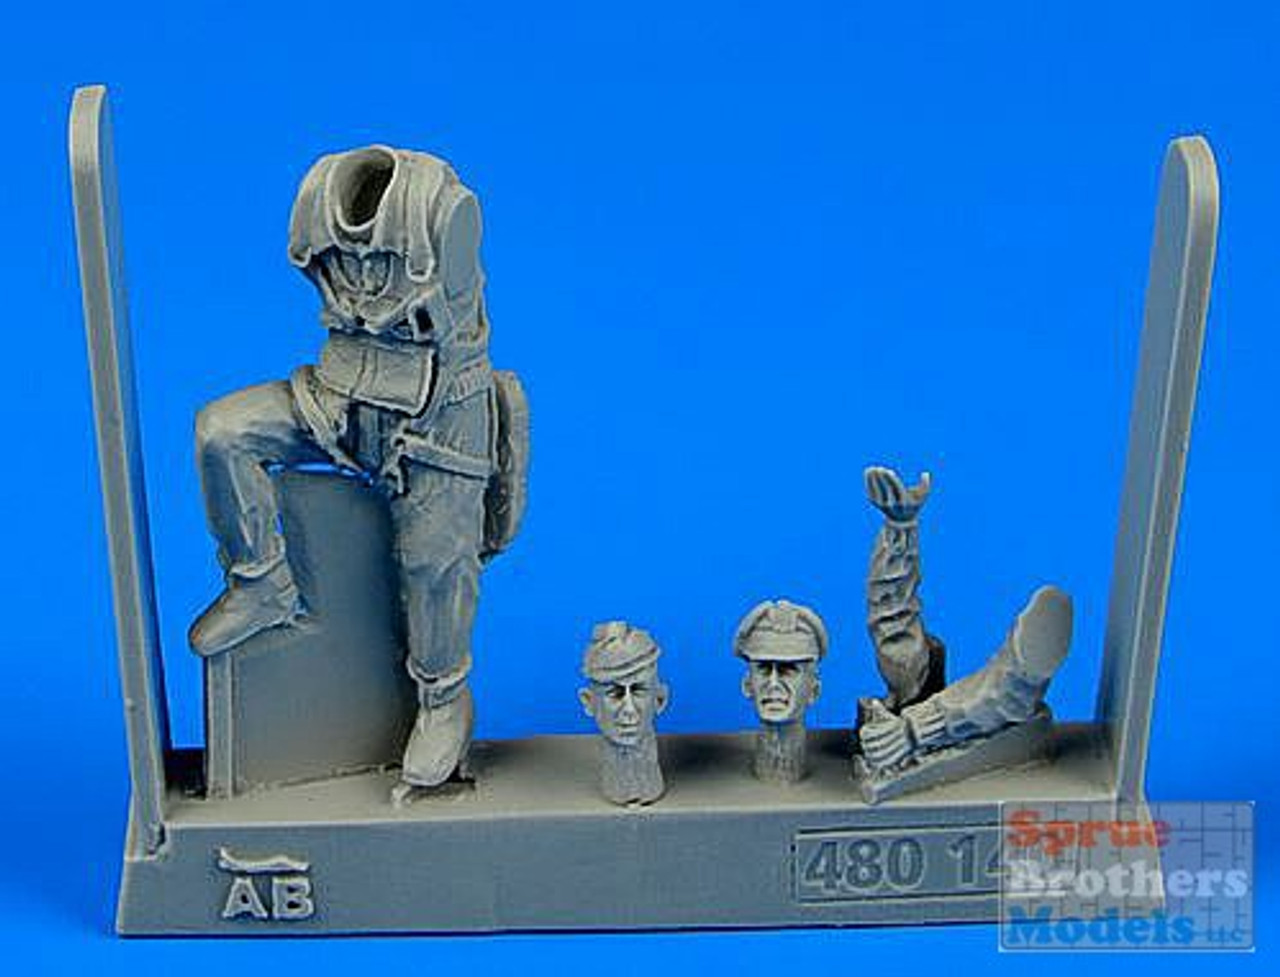 ARSAB480140 1:48 AeroBonus USAAF Fighter Pilot Figure WW2 9th Army (European Battlefields)